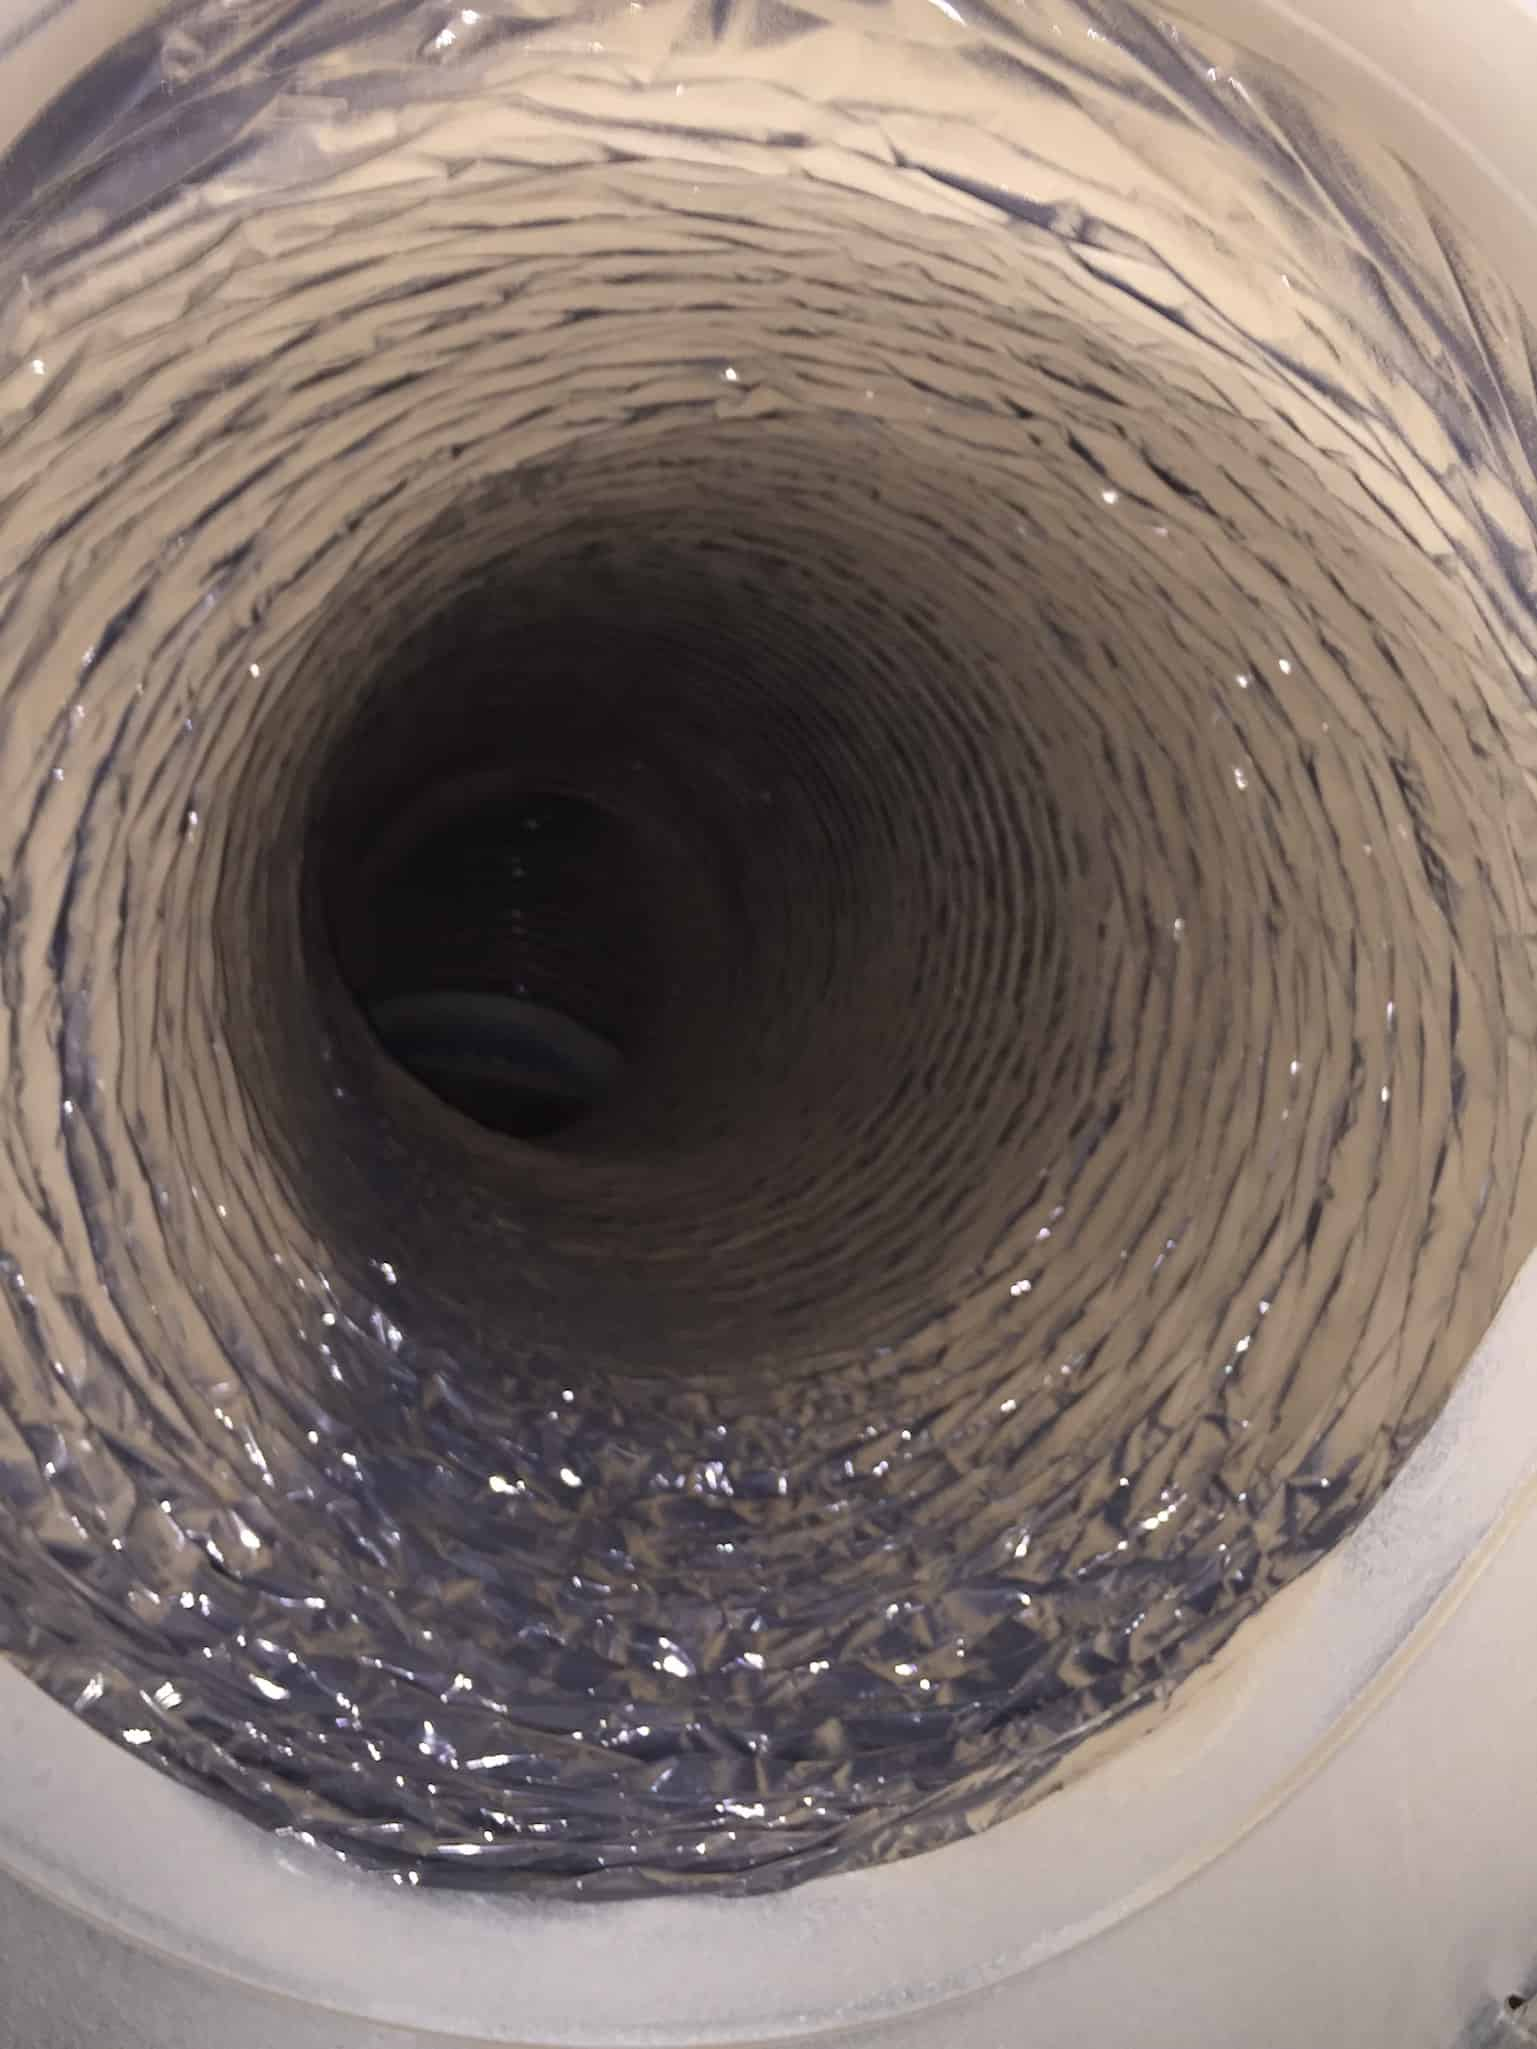 Dryer Vent Cleaning before after pictures